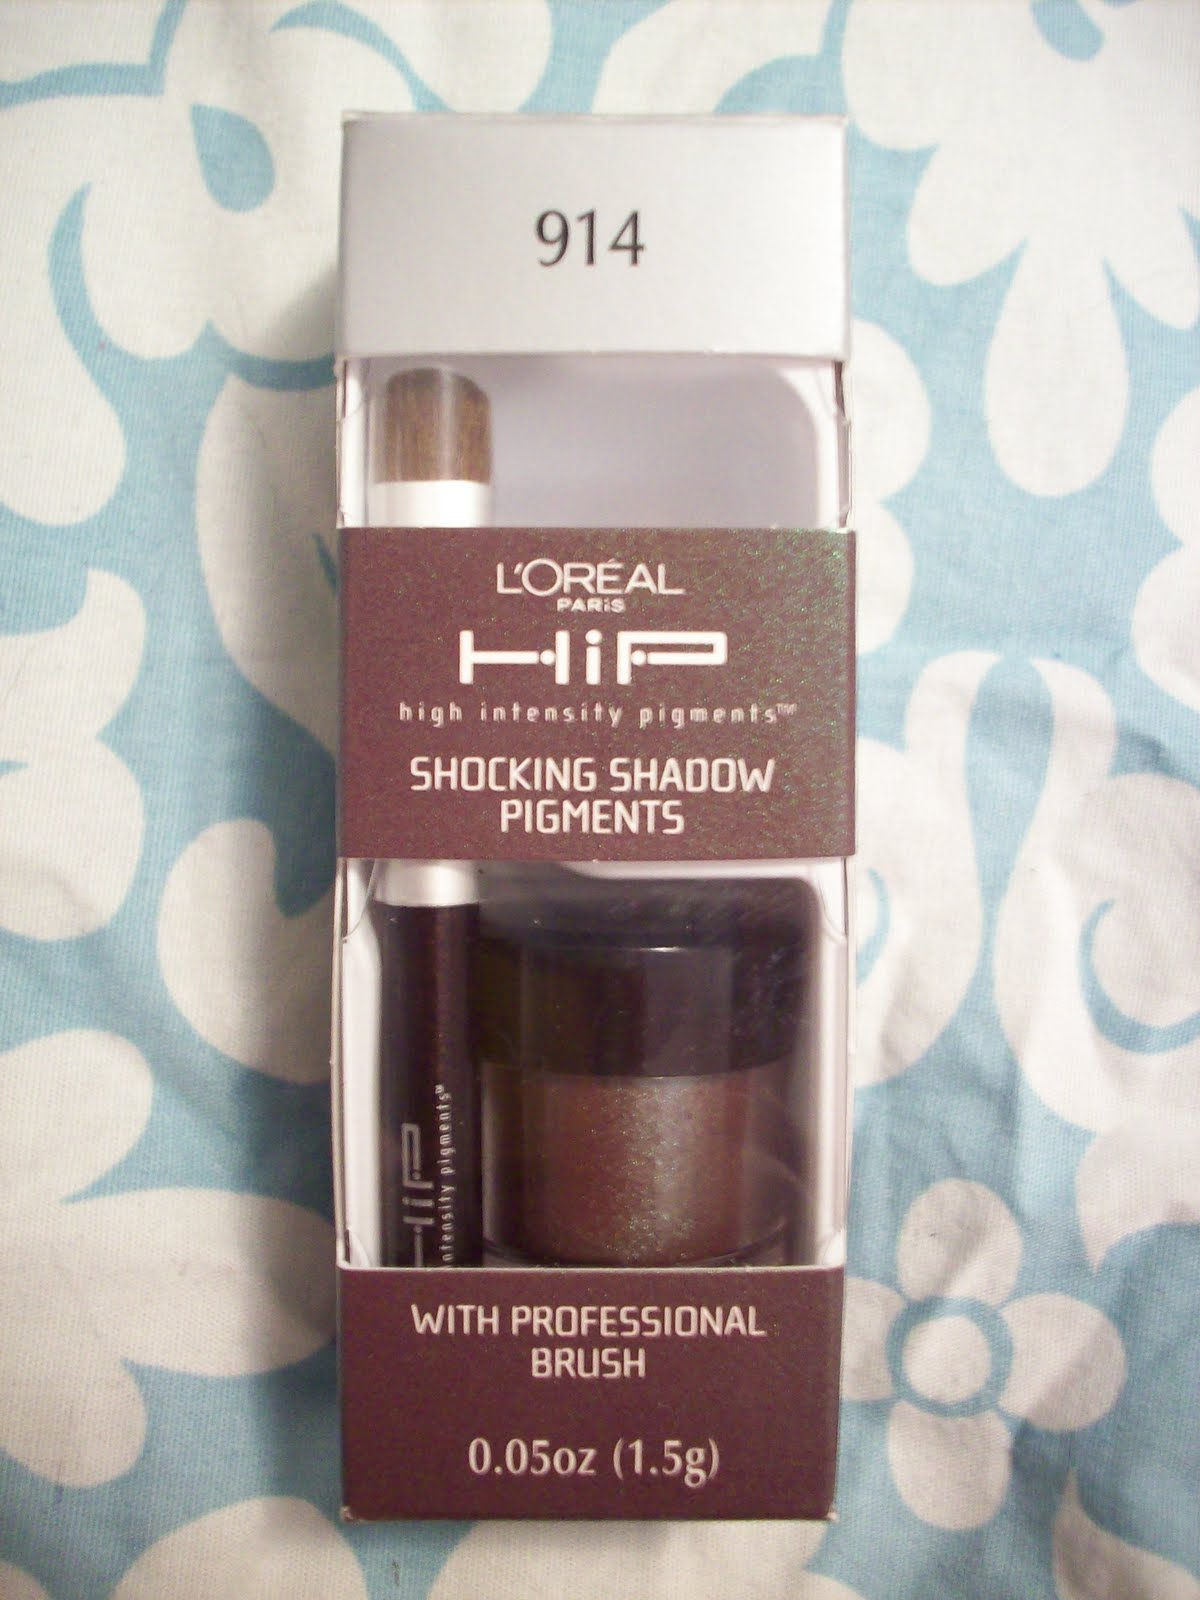 Applied Glamour: L'Oreal HIP Shocking Shadow Pigments in Intrepid